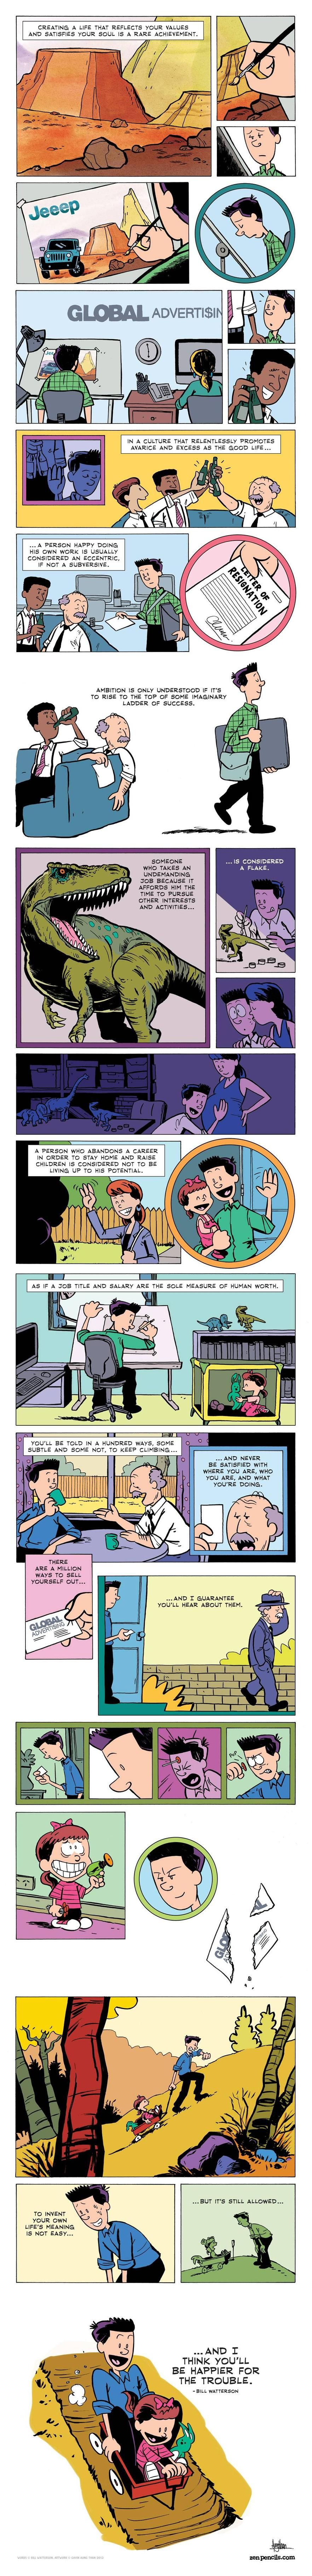 This is a comic by Zen Pencils creator, Gavin Aung Than, using a quote from Bill Watterson in his style: http://zenpencils.com/comic...